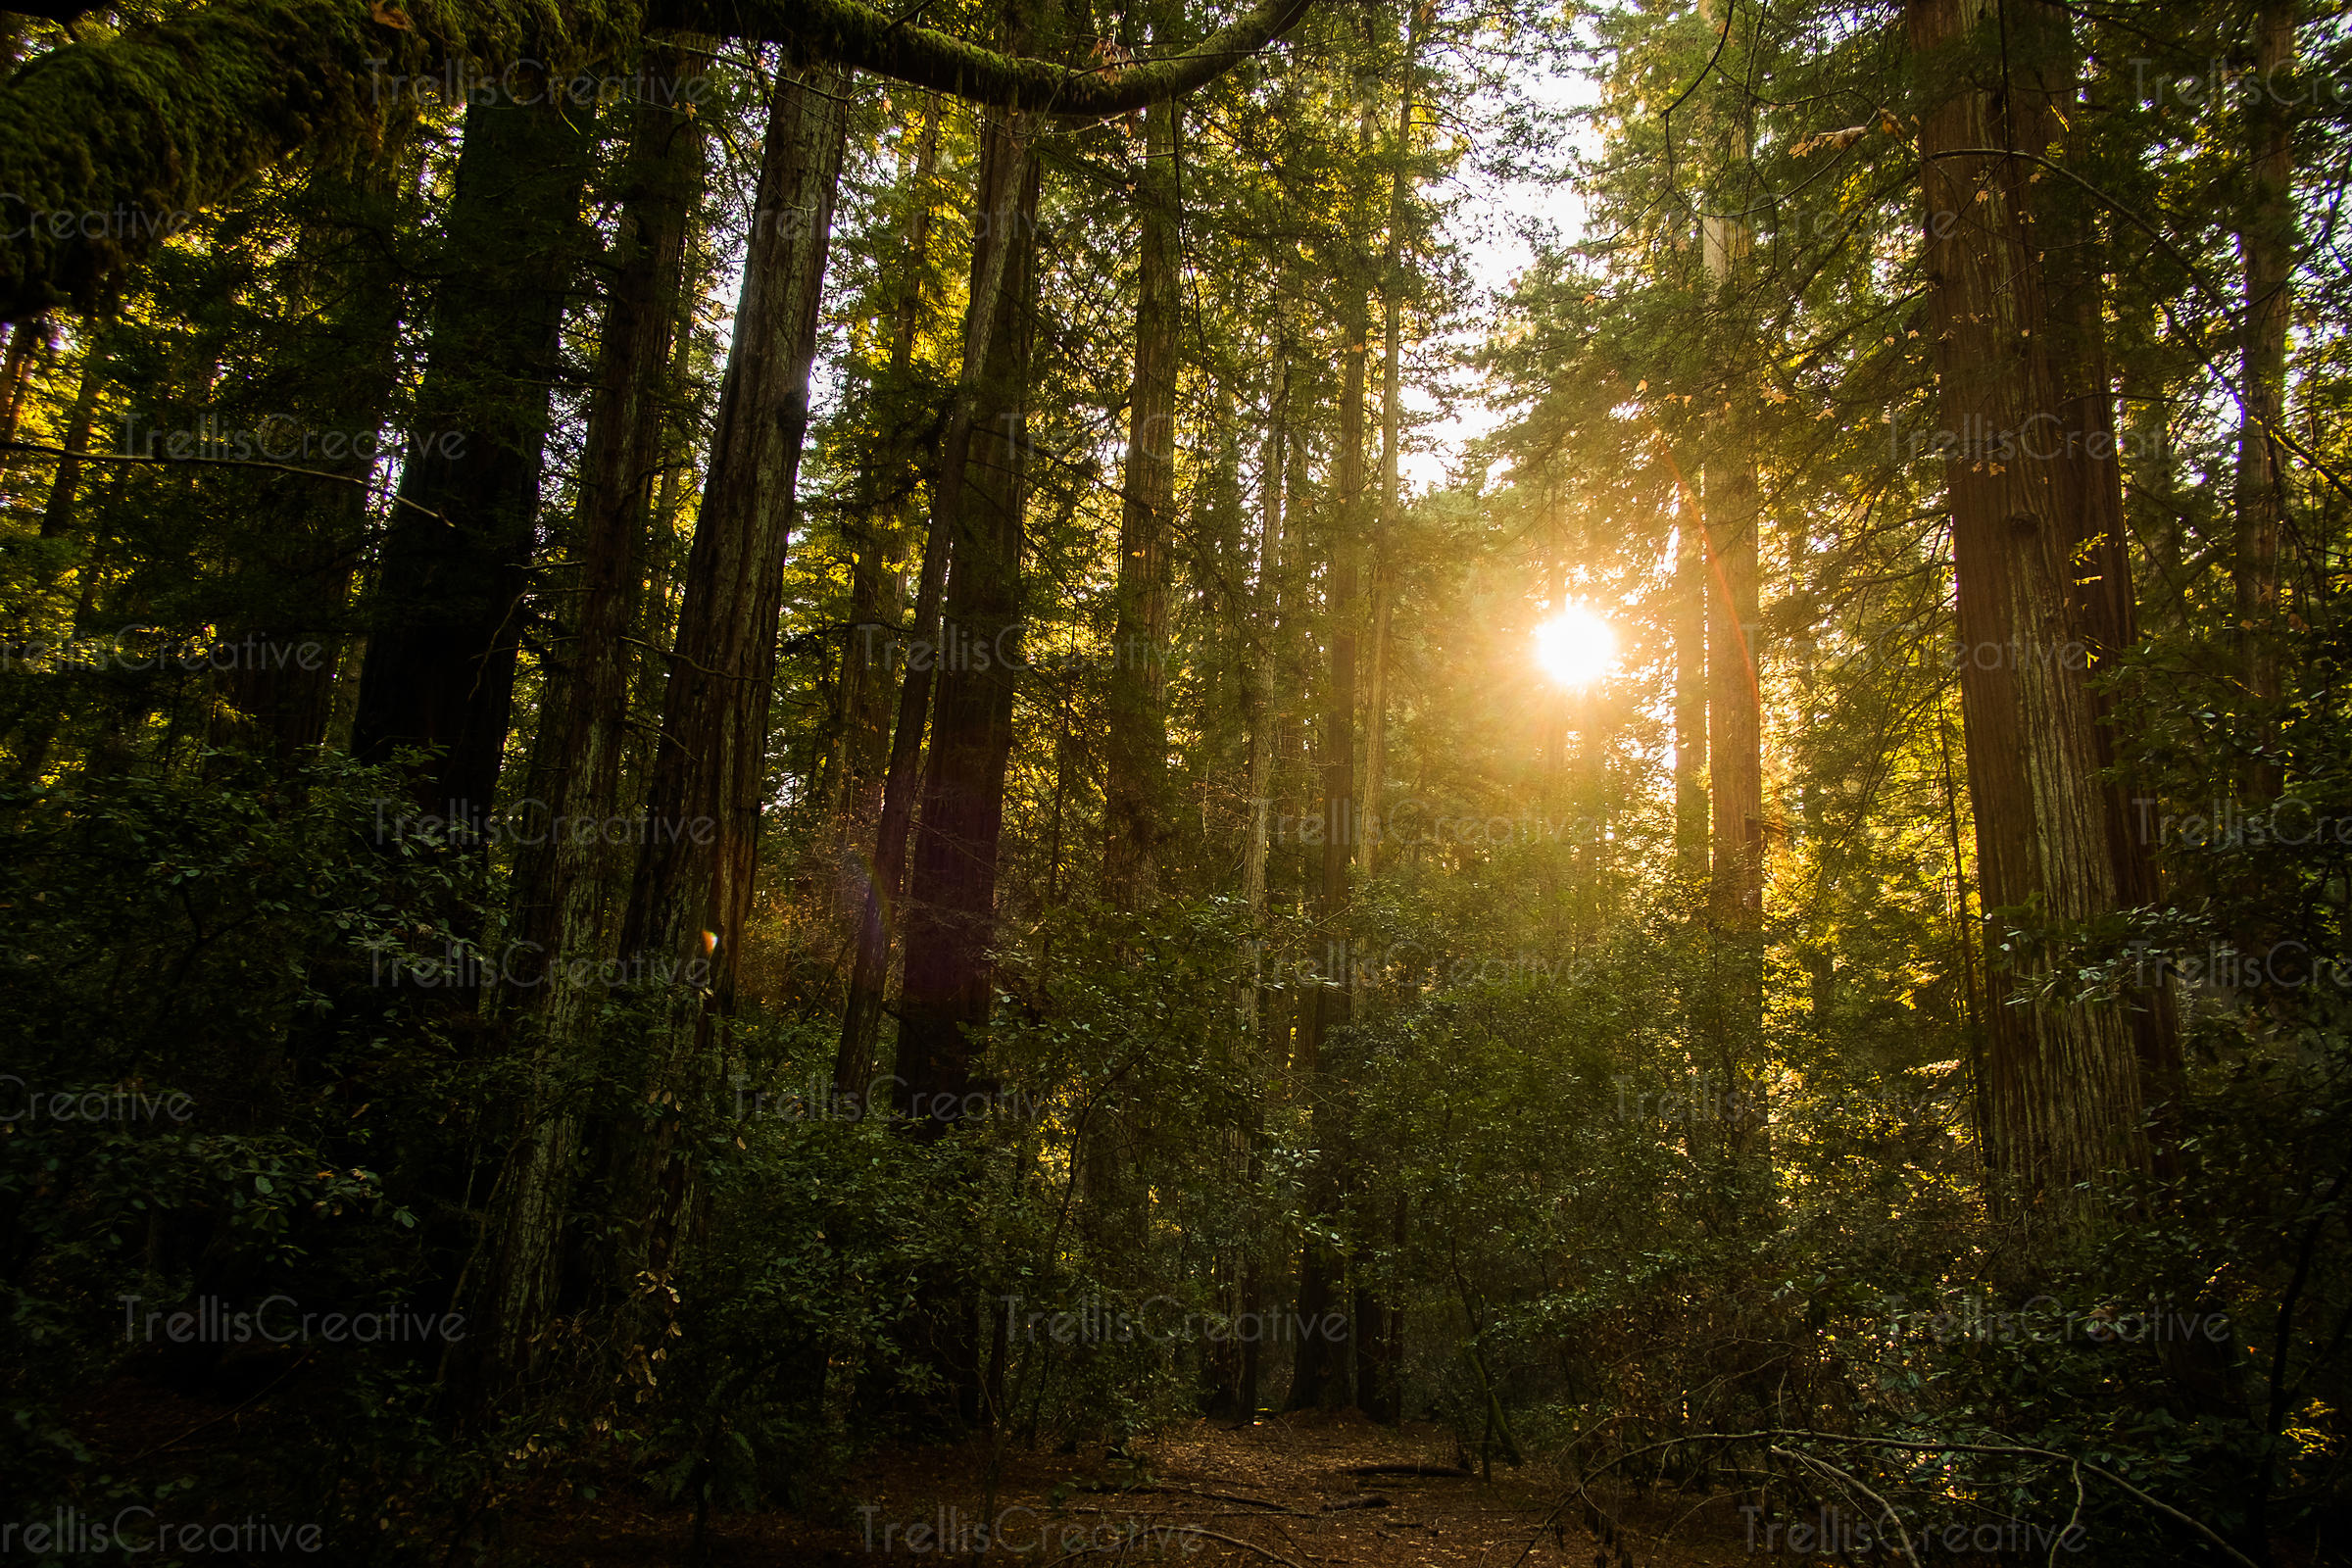 Sunshine as seen through the dense redwood trees